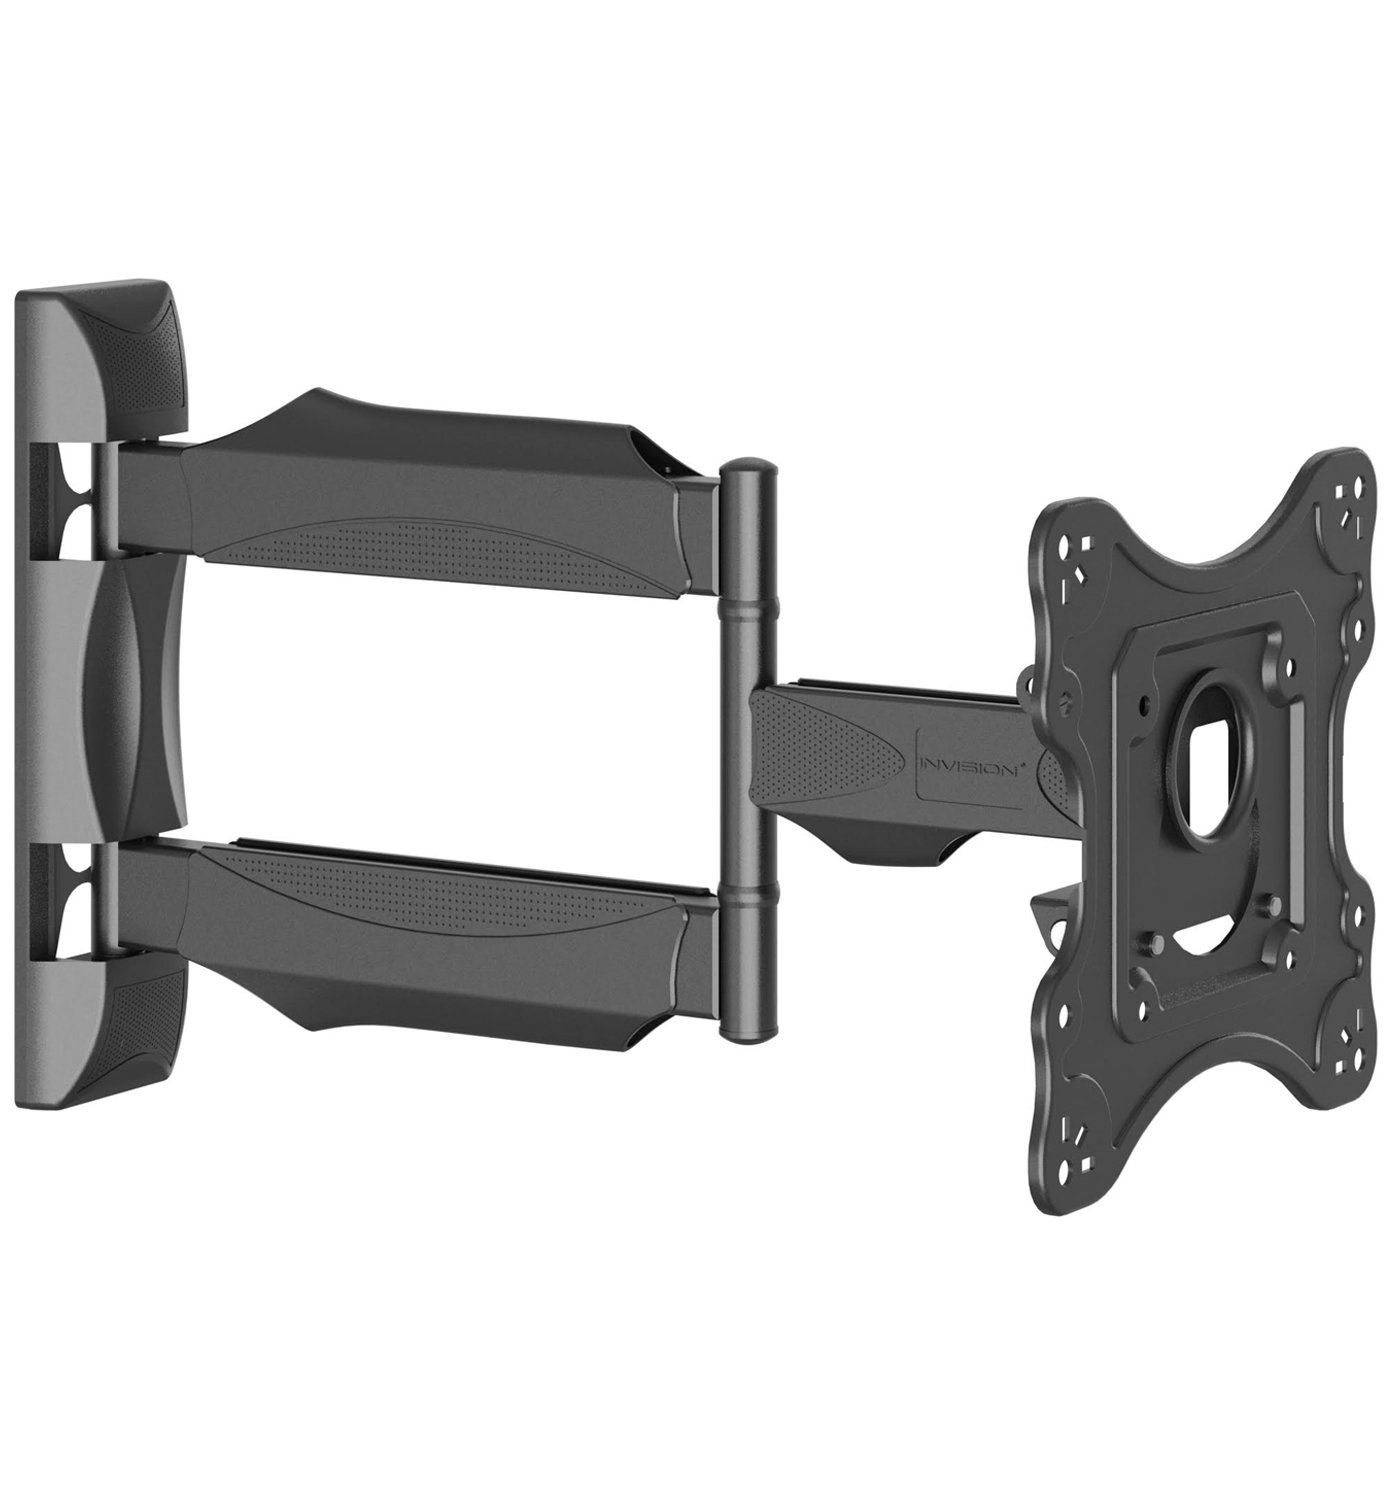 Invision A1 - Soporte de pared para TV 26-42 Pulgadas, Ultra Delgado,